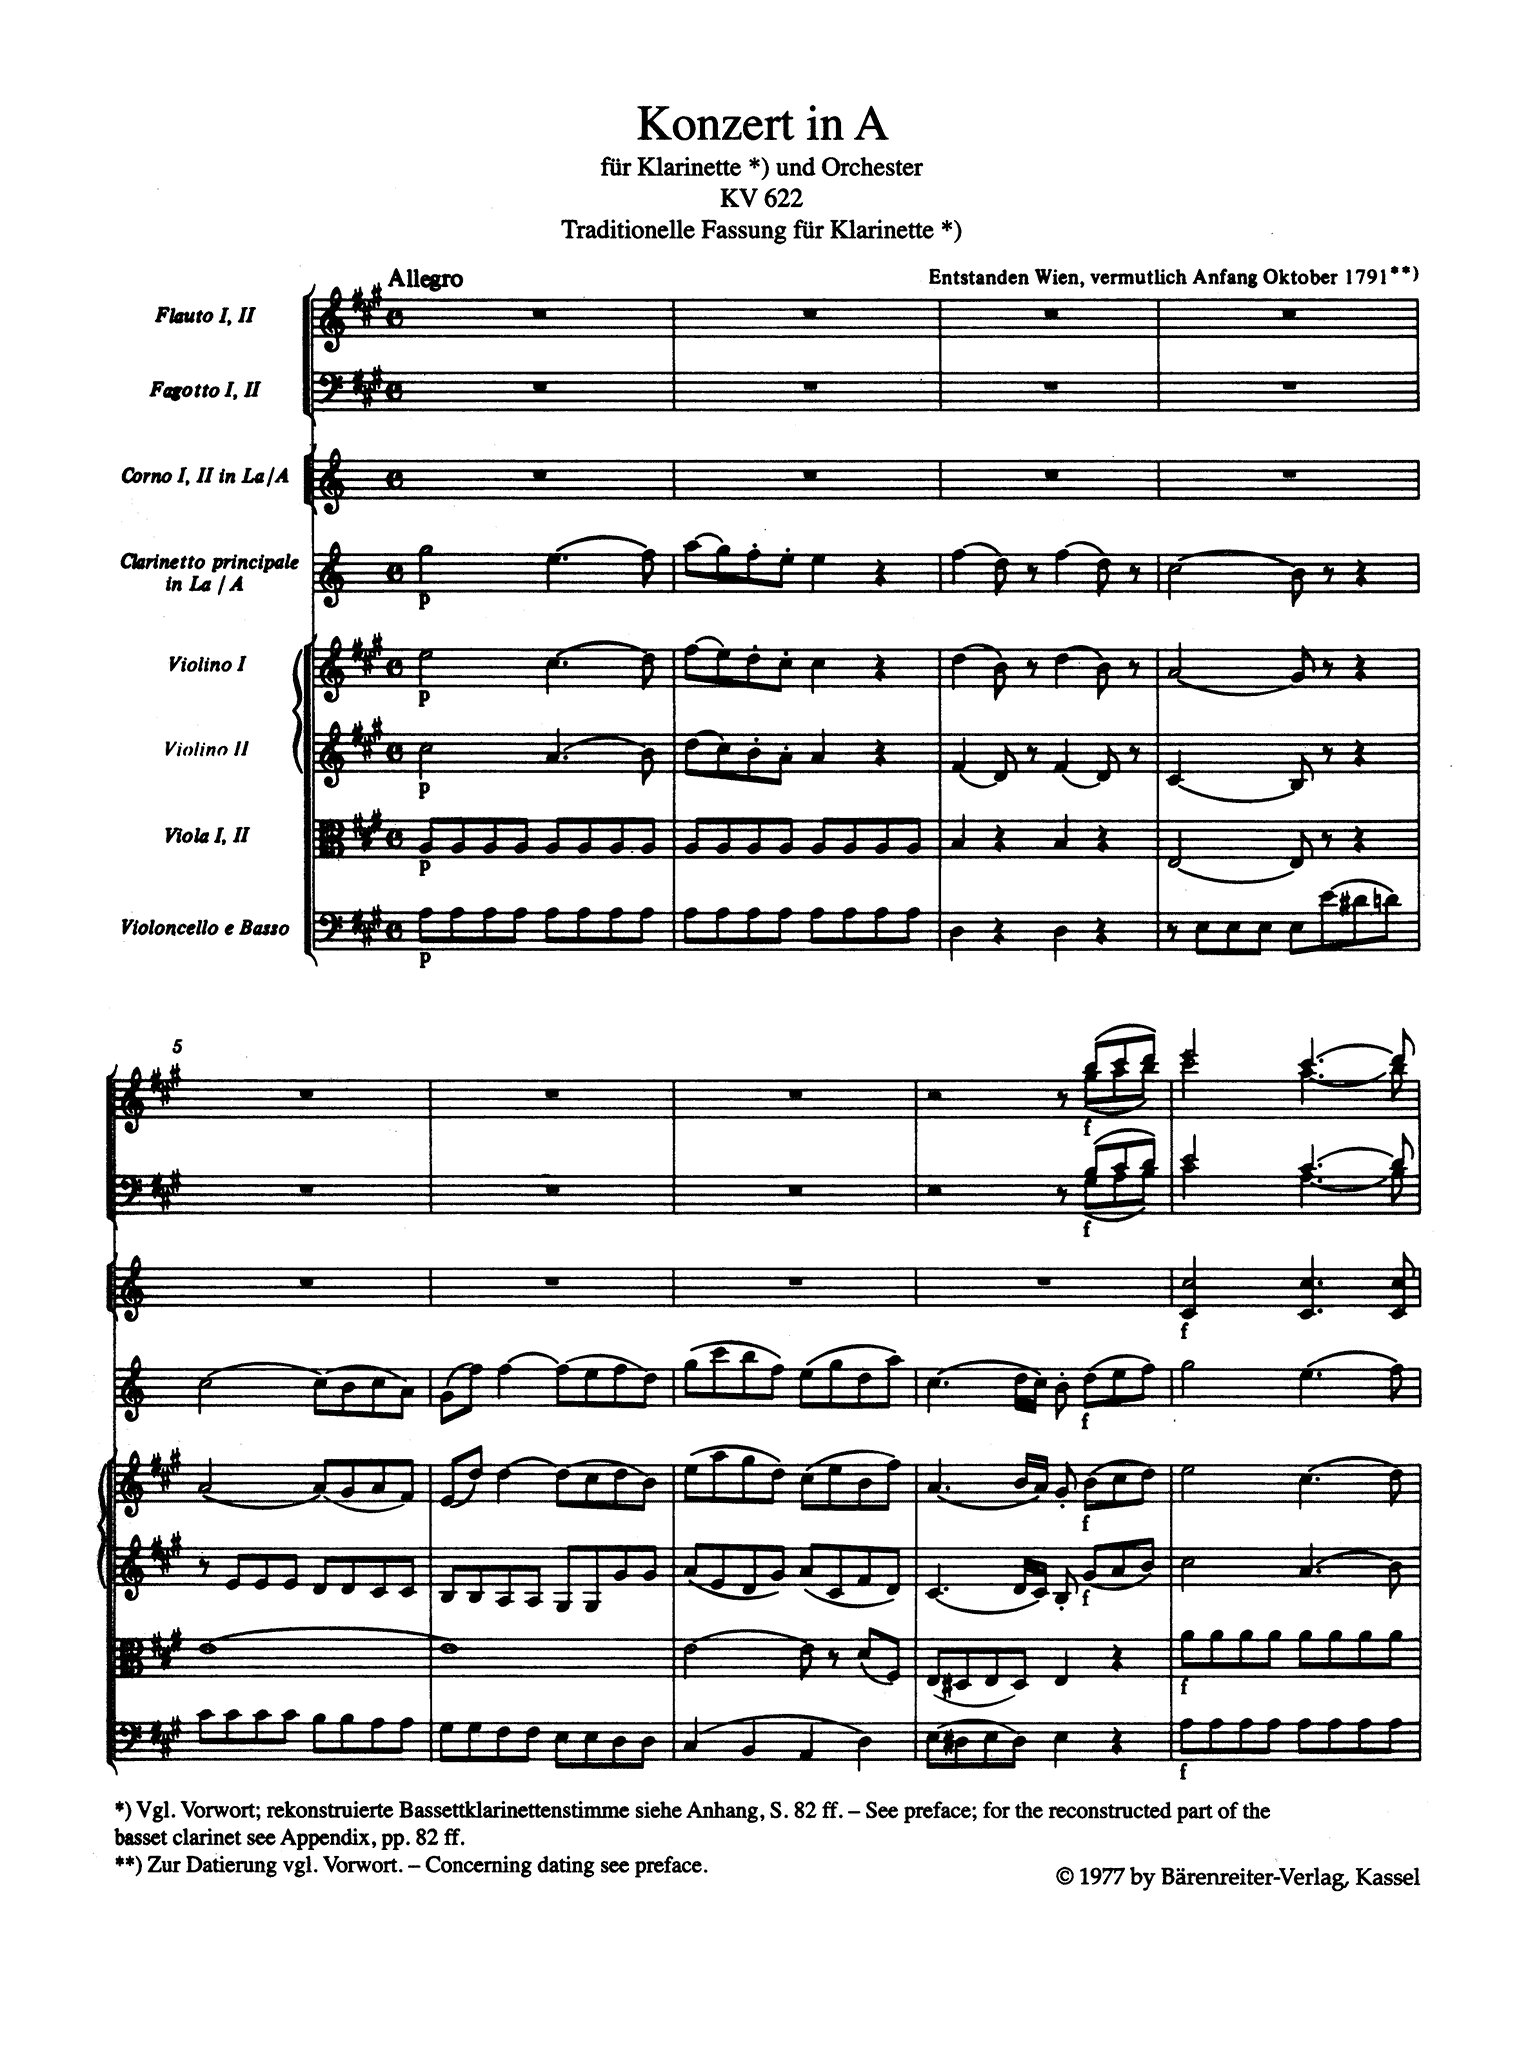 Clarinet Concerto in A Major, K. 622 - Movement 1